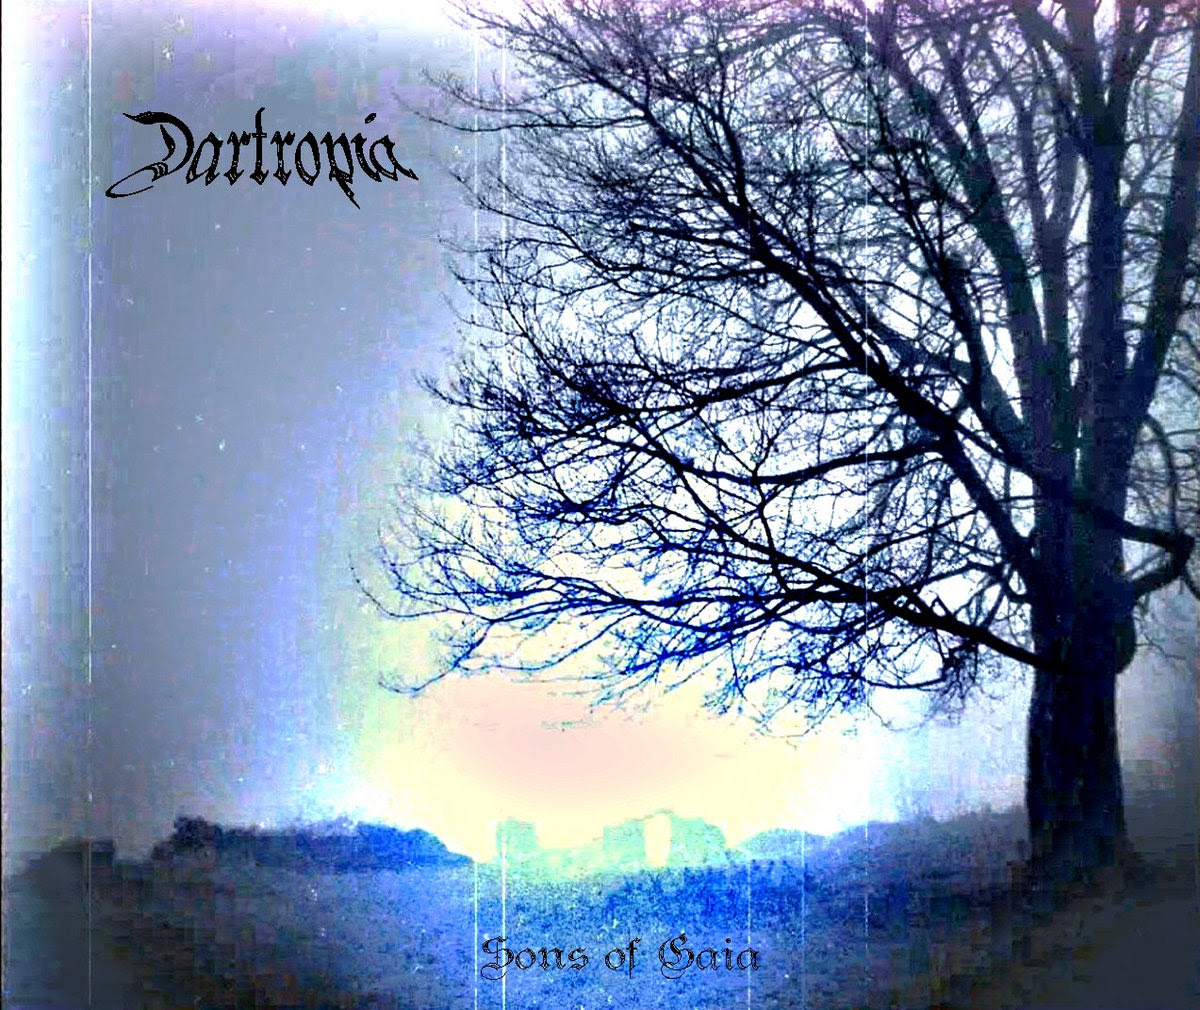 Dartropia - Sons of Gaïa (Demo 2014)